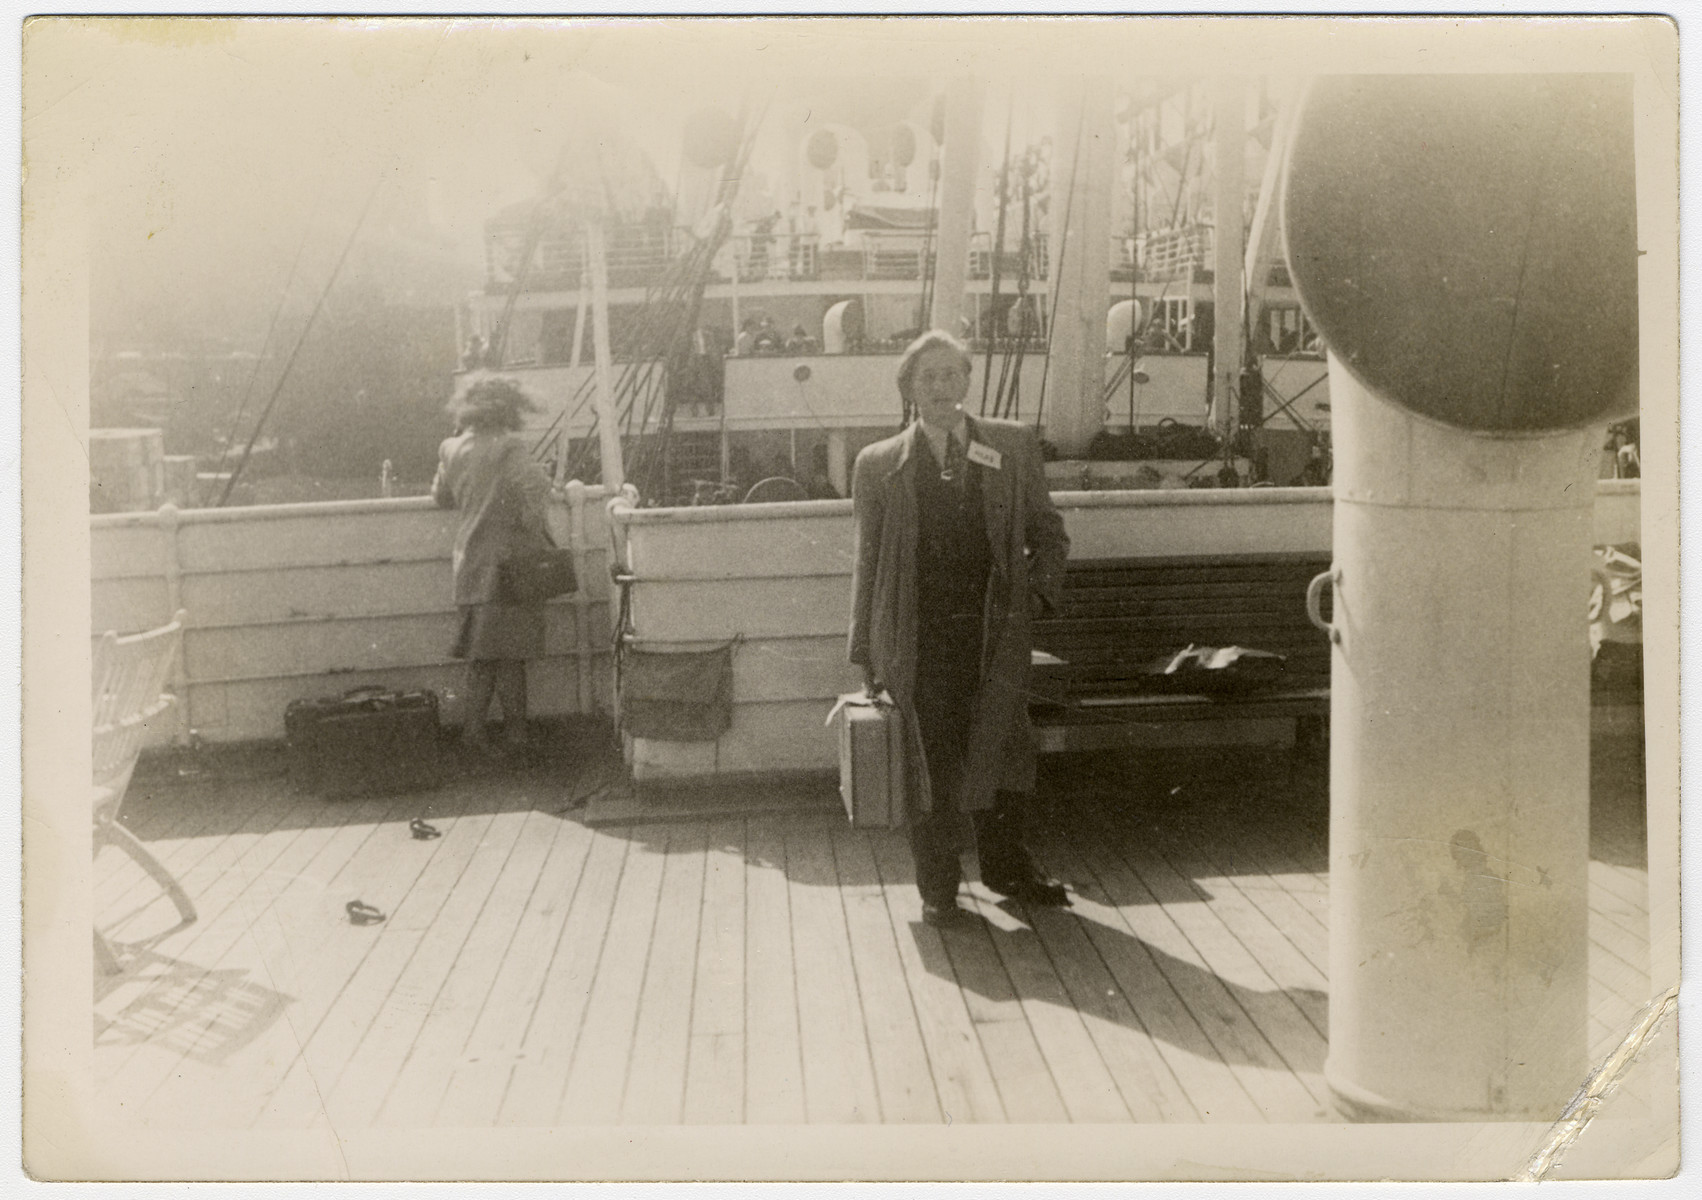 Henry Kolber stands on the deck of a ship holding his suitcase while en route to America.